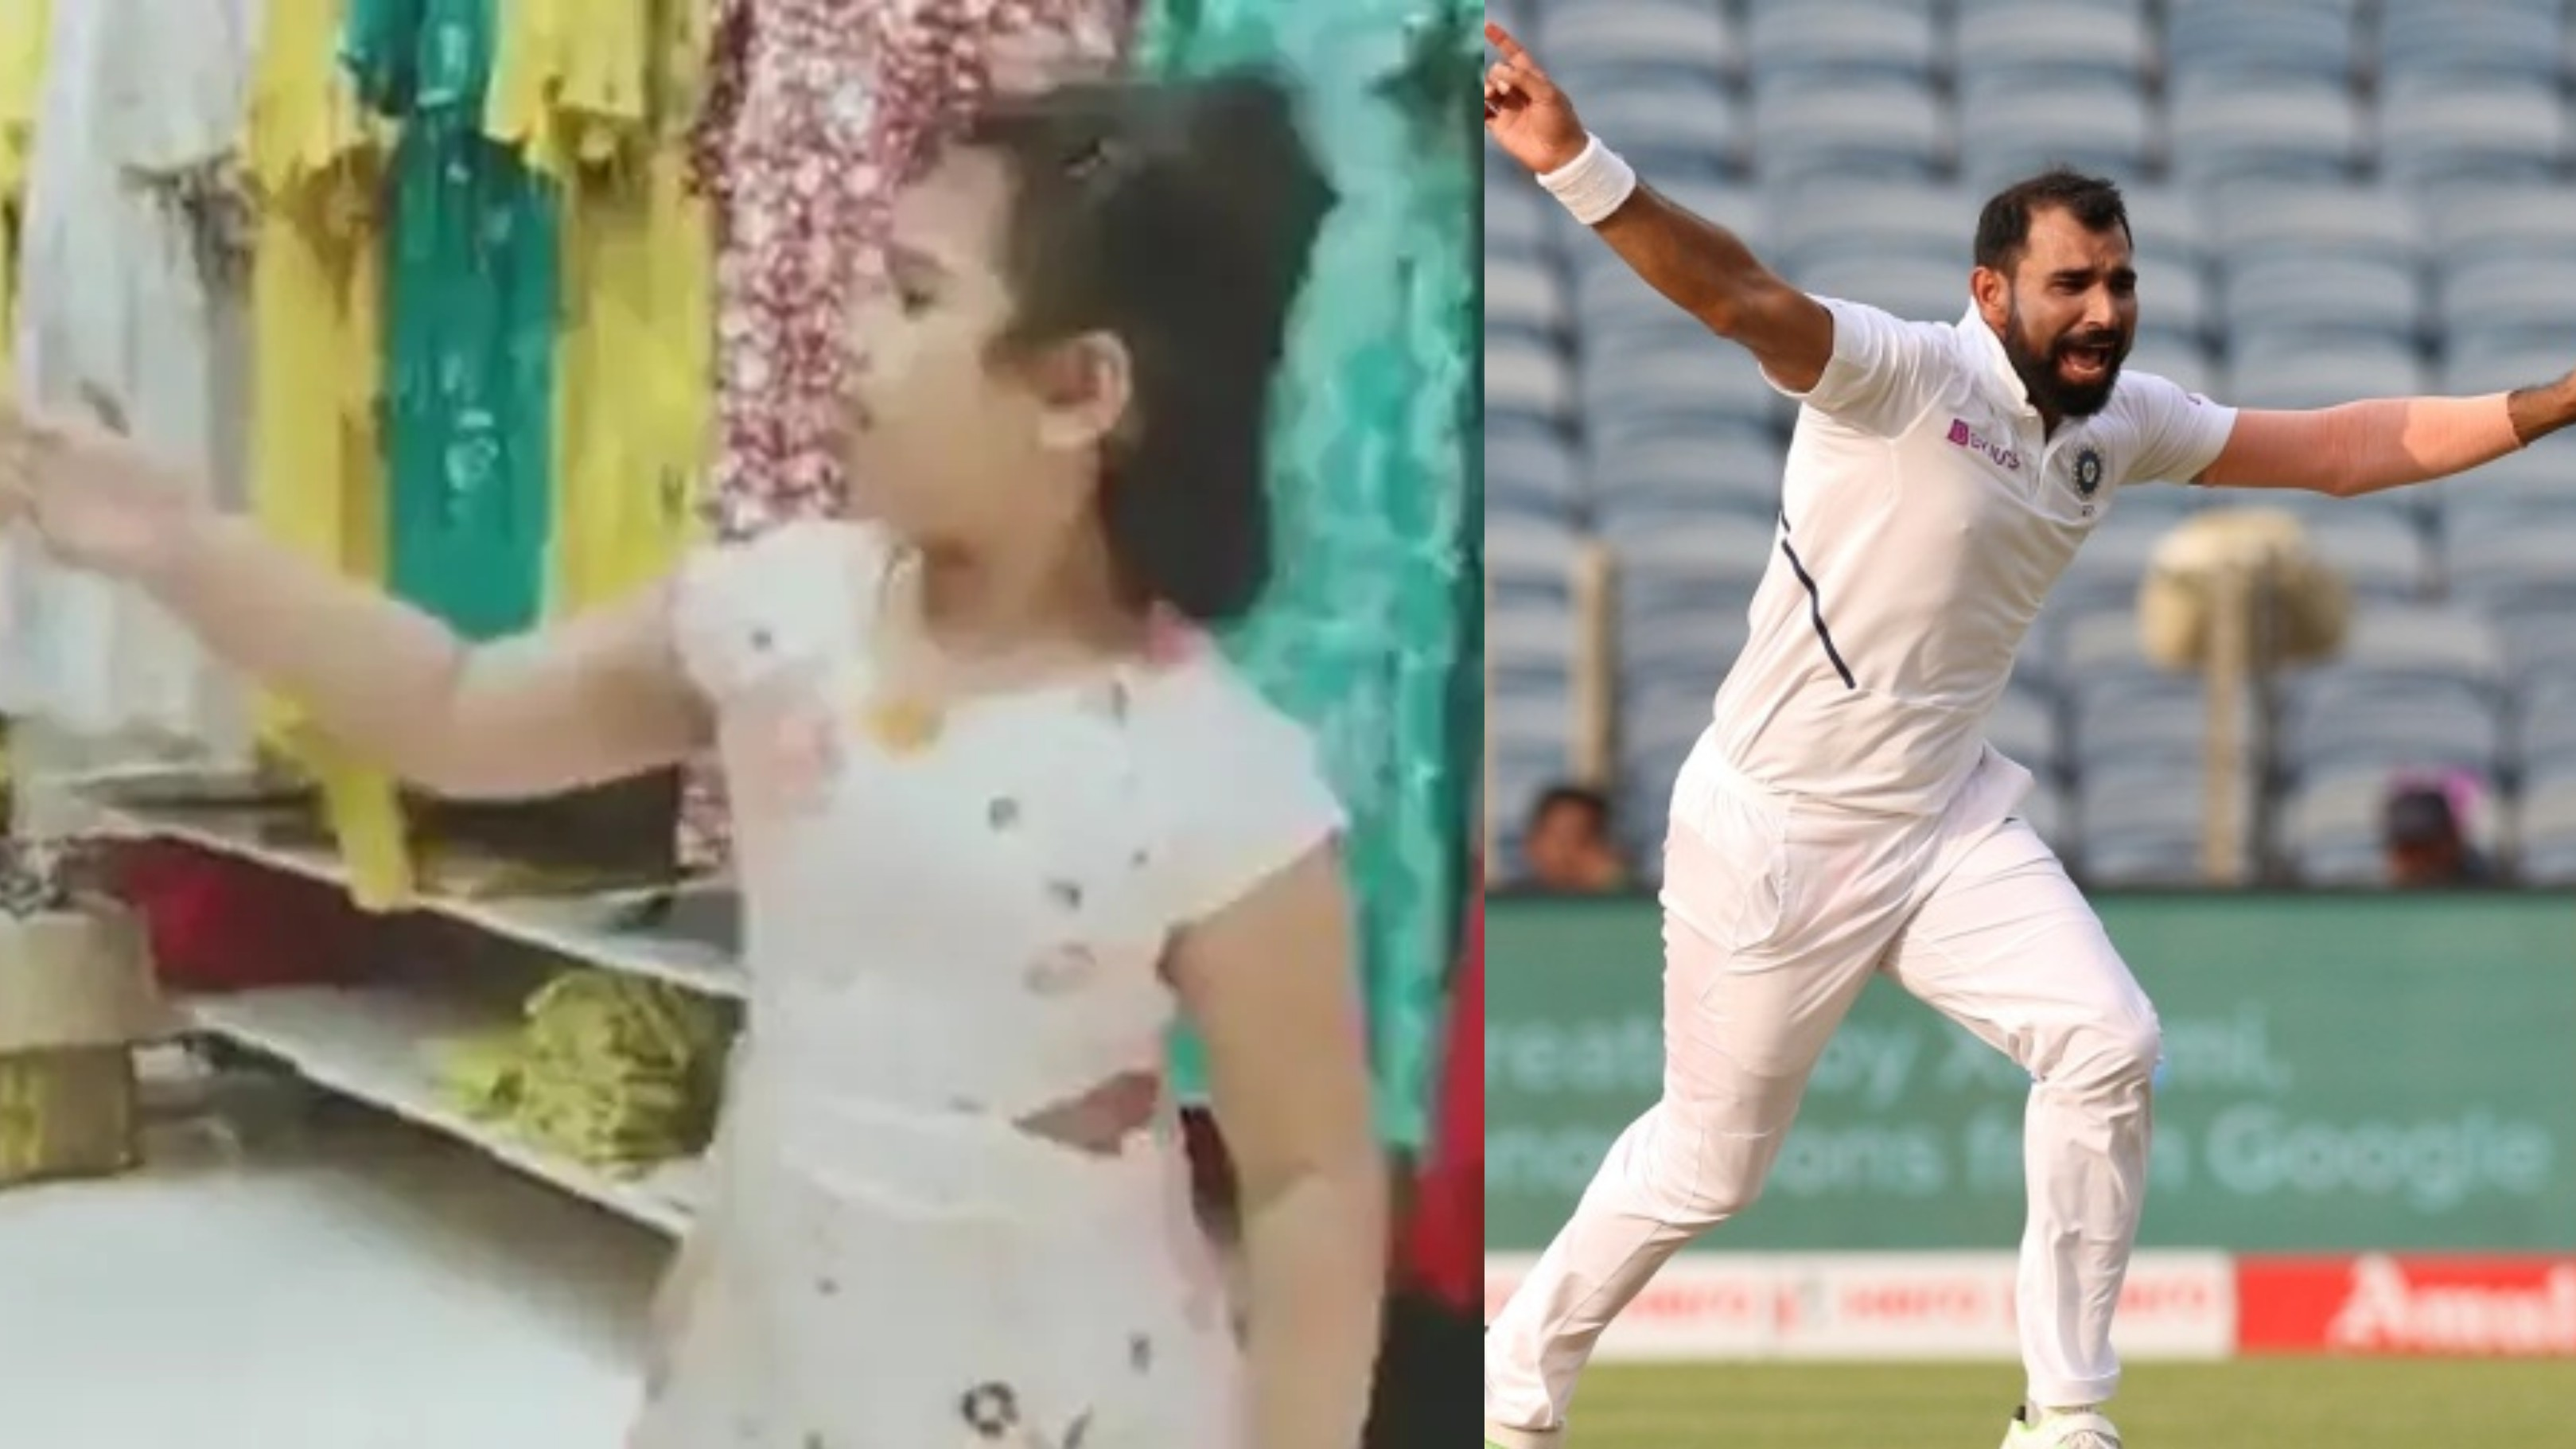 Watch - Mohammad Shami shares an adorable video of his daughter's dance